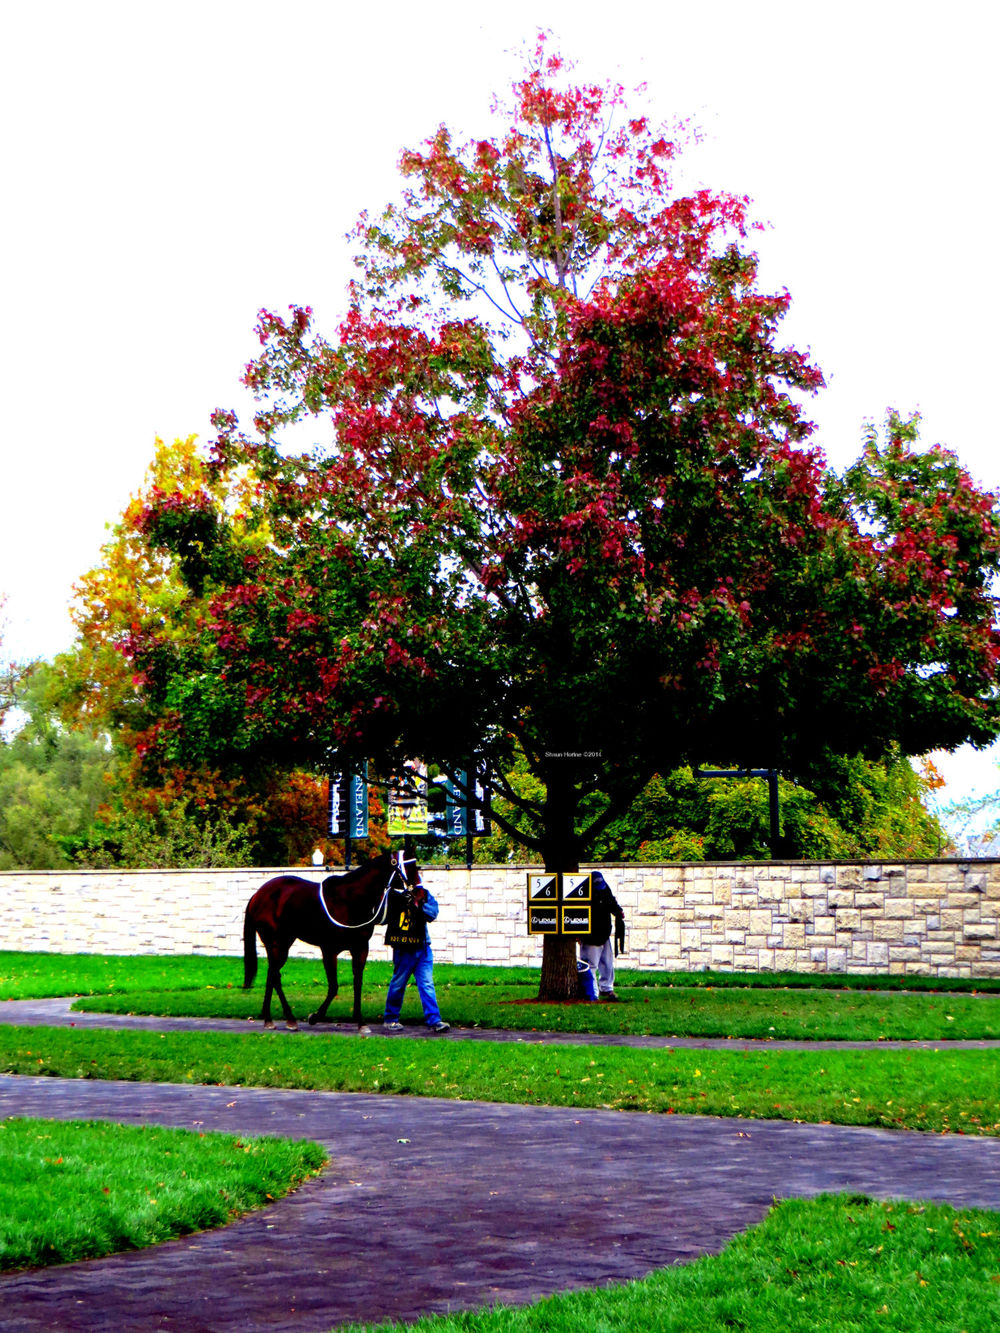 The paddock area where the horses are prepared prior to each race.  They walk around trees before being saddled and prepped for each race.